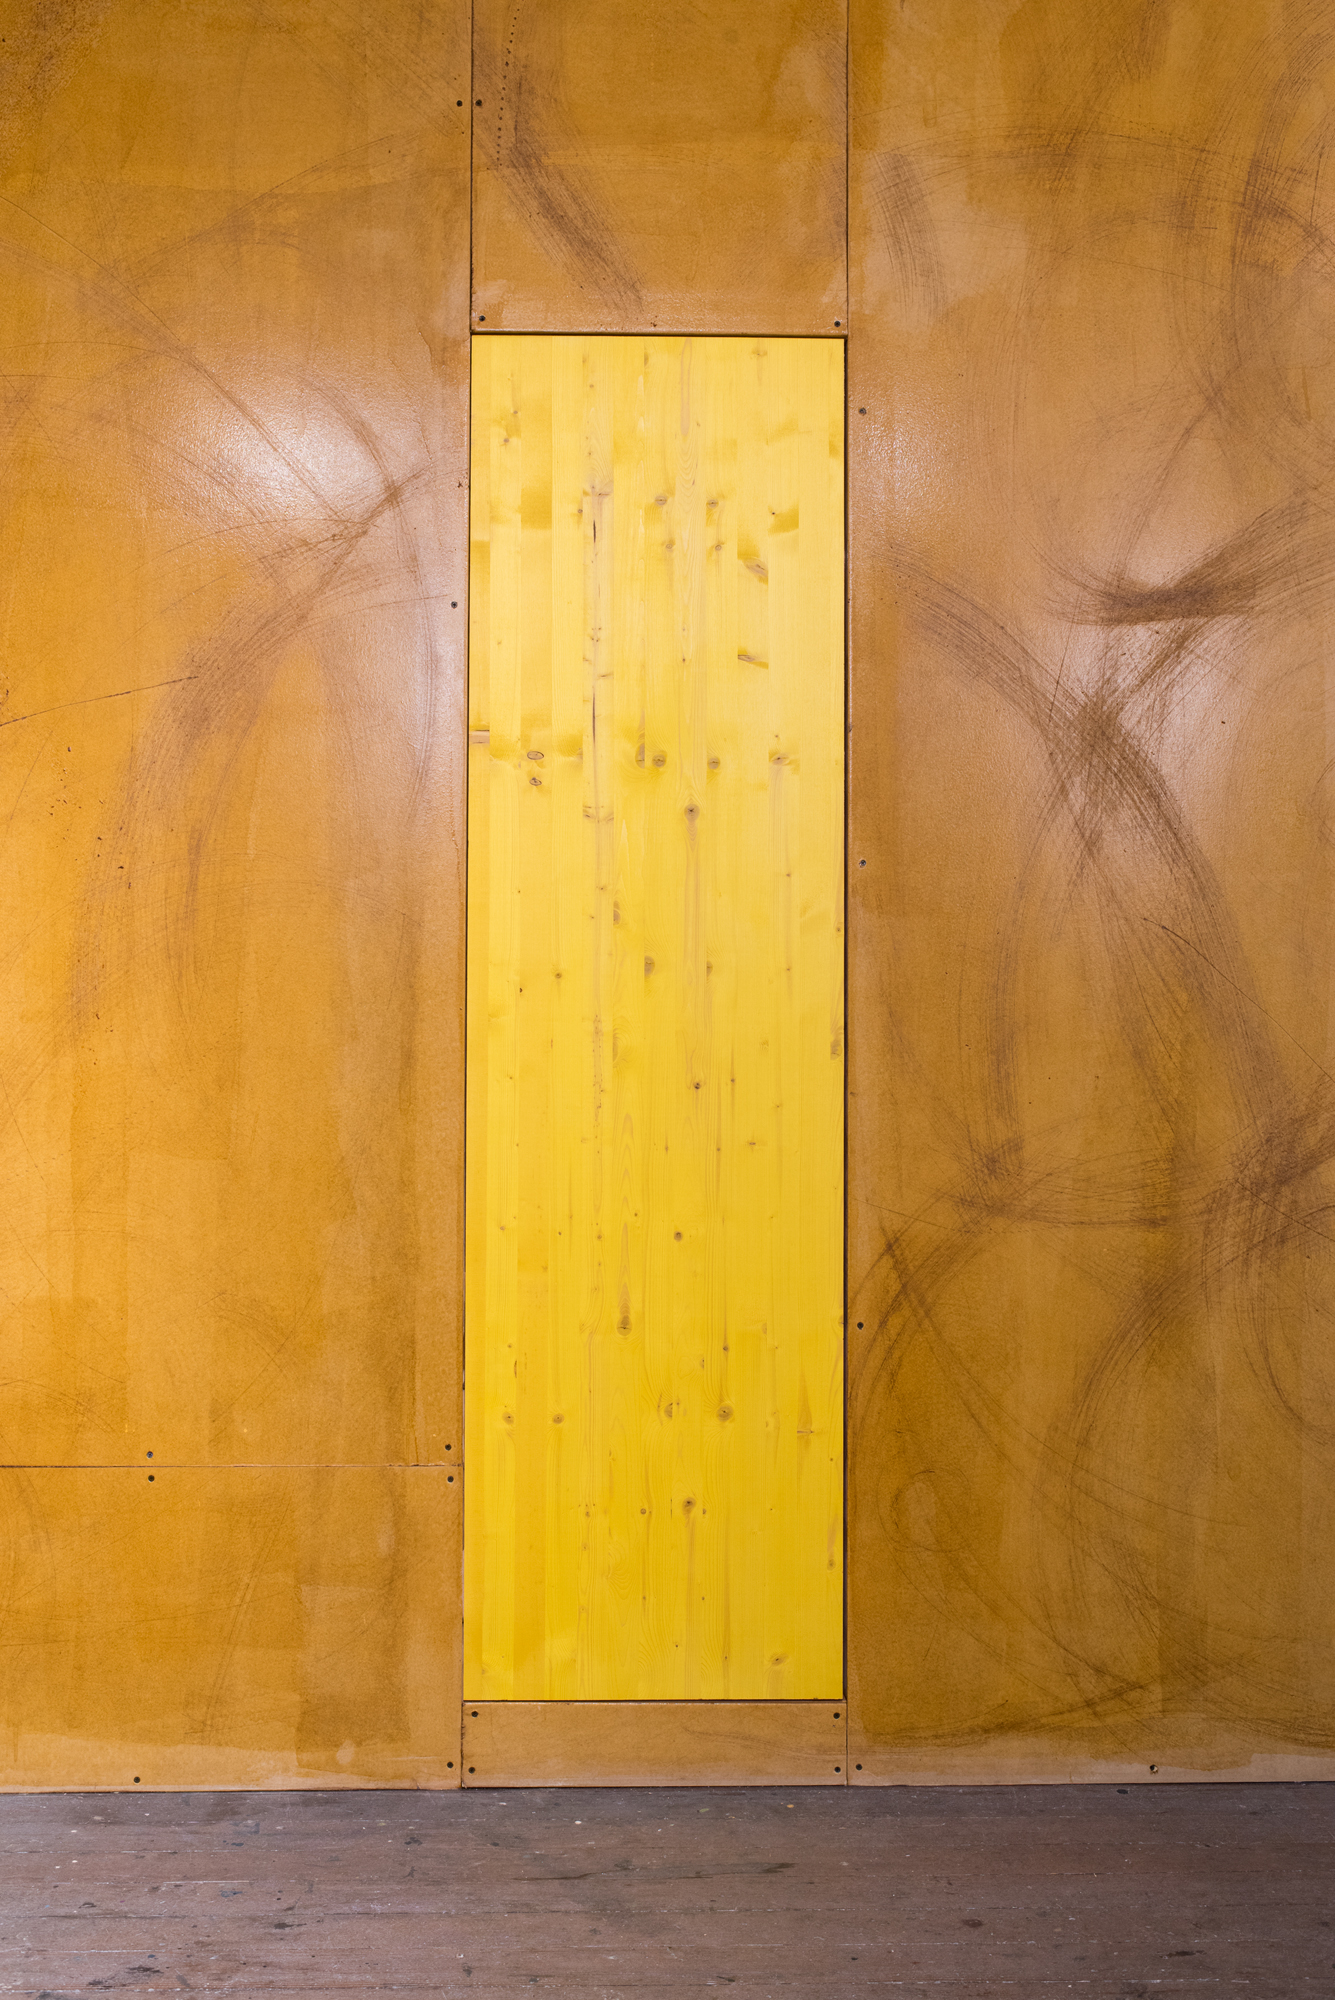 Gabriel Sierra, Trapdoor for Contadina, 2019. Wood plank, yellow stain, 72 x 20 x 1.5 inches. Courtesy of the artist and Kurimanzutto, Mexico; Photo: Preston/Kalogiros; Courtesy of The 500 Capp Street Foundation.